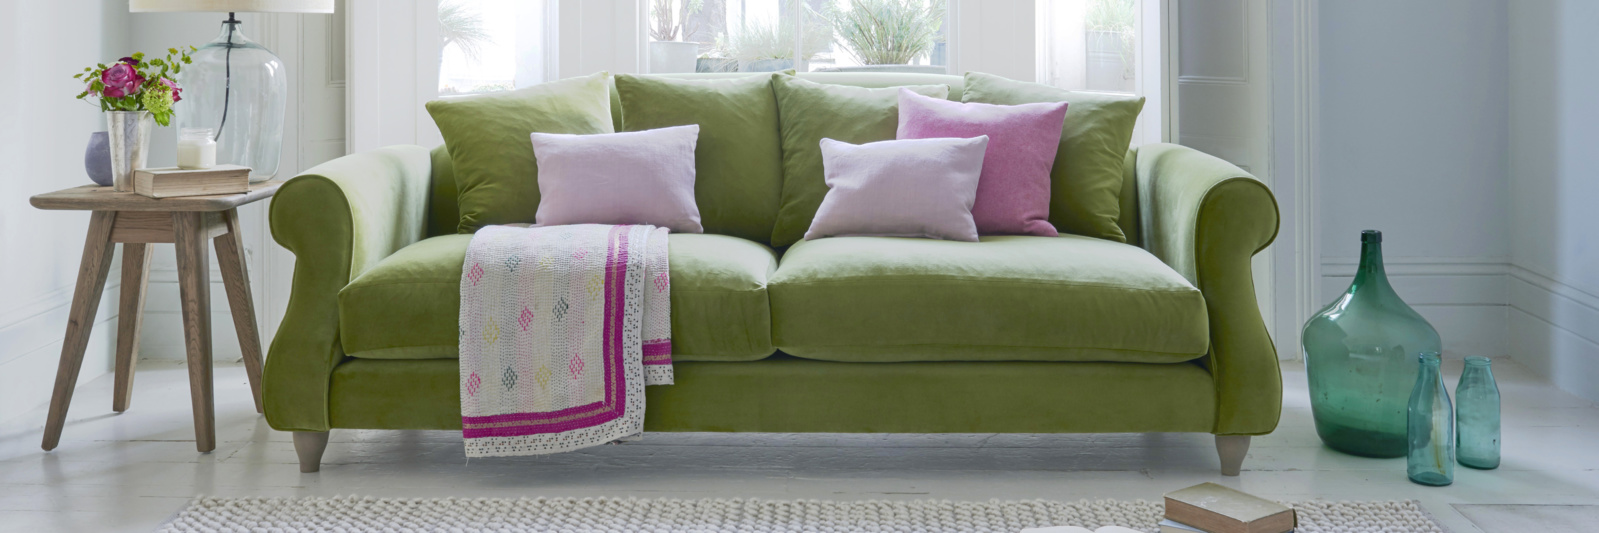 Sloucher French-style green sofa